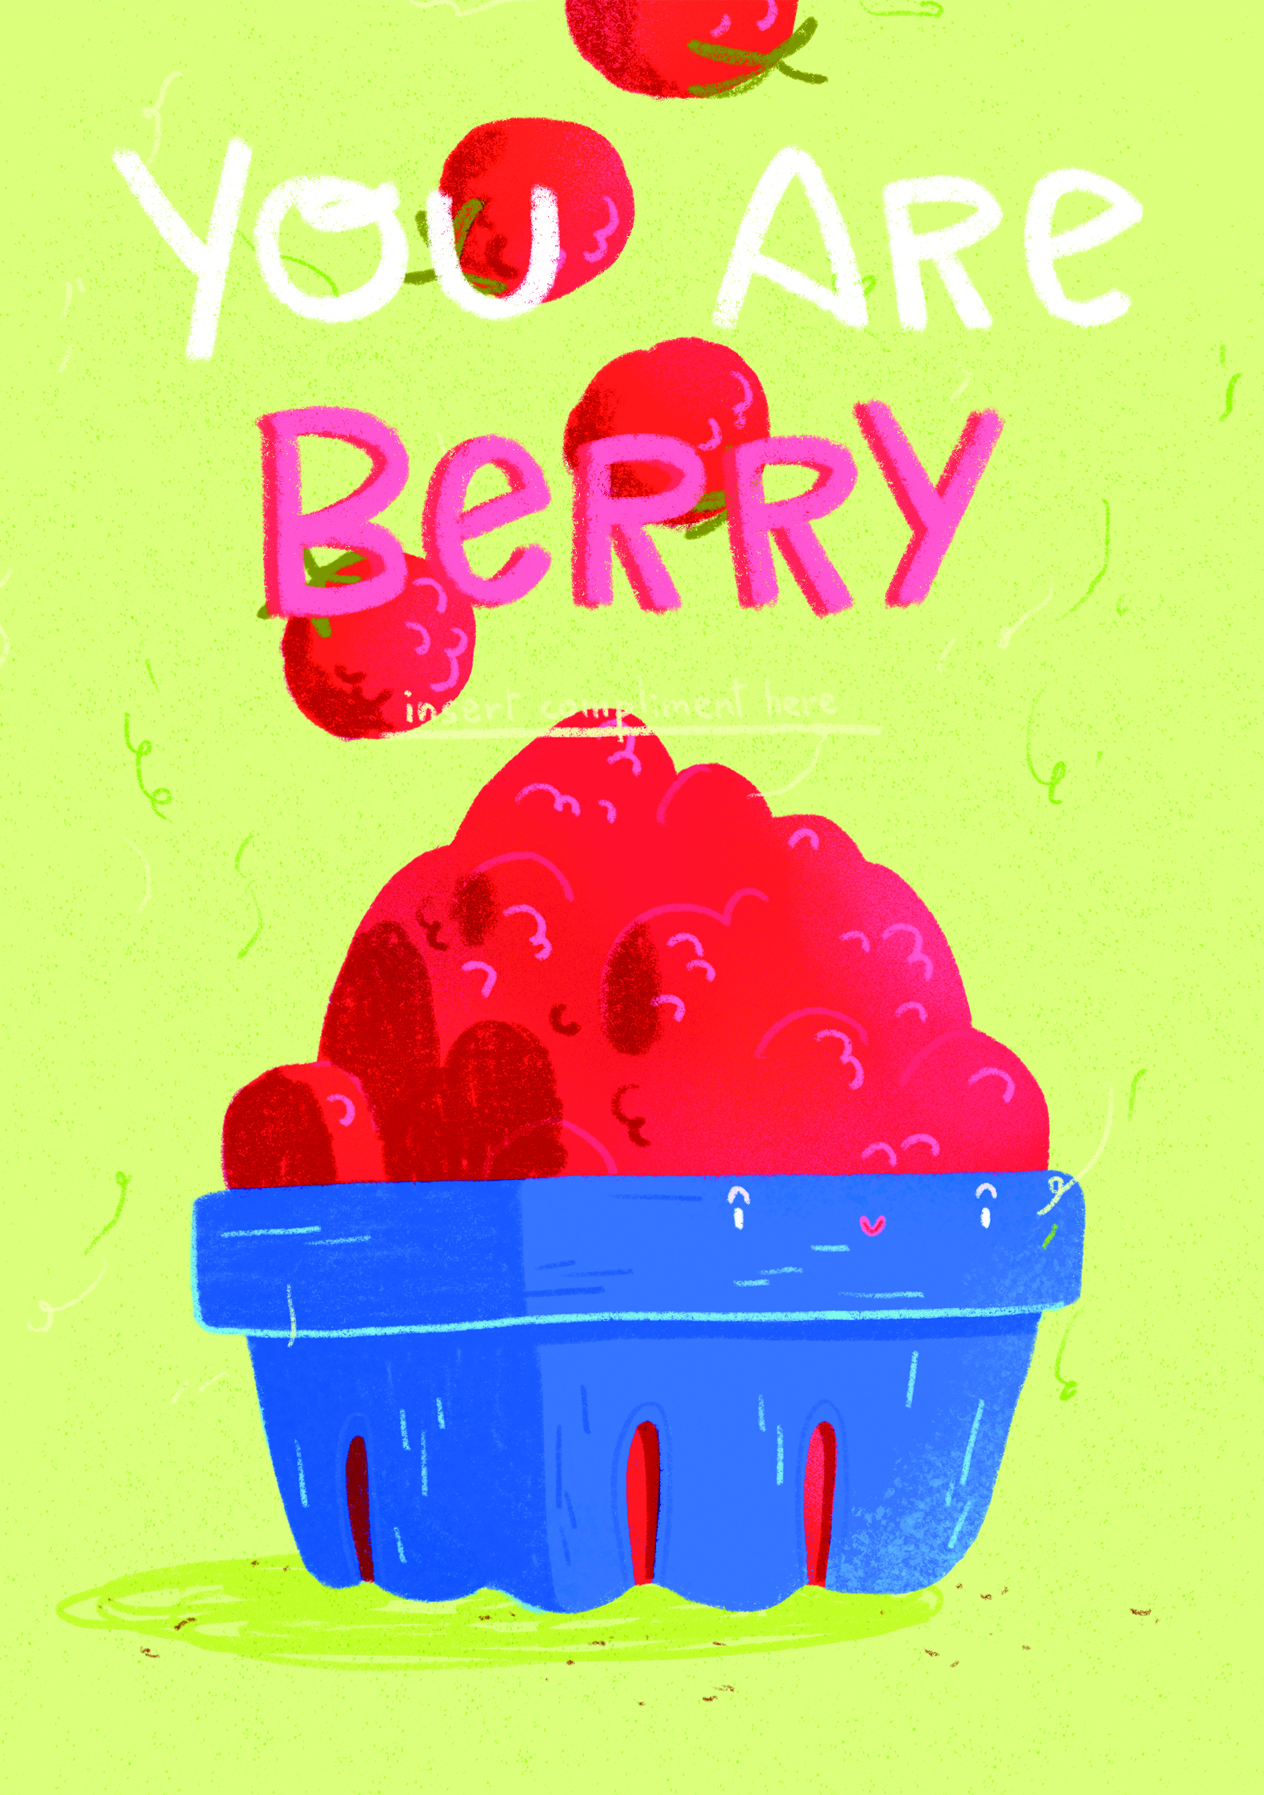 You are berry...